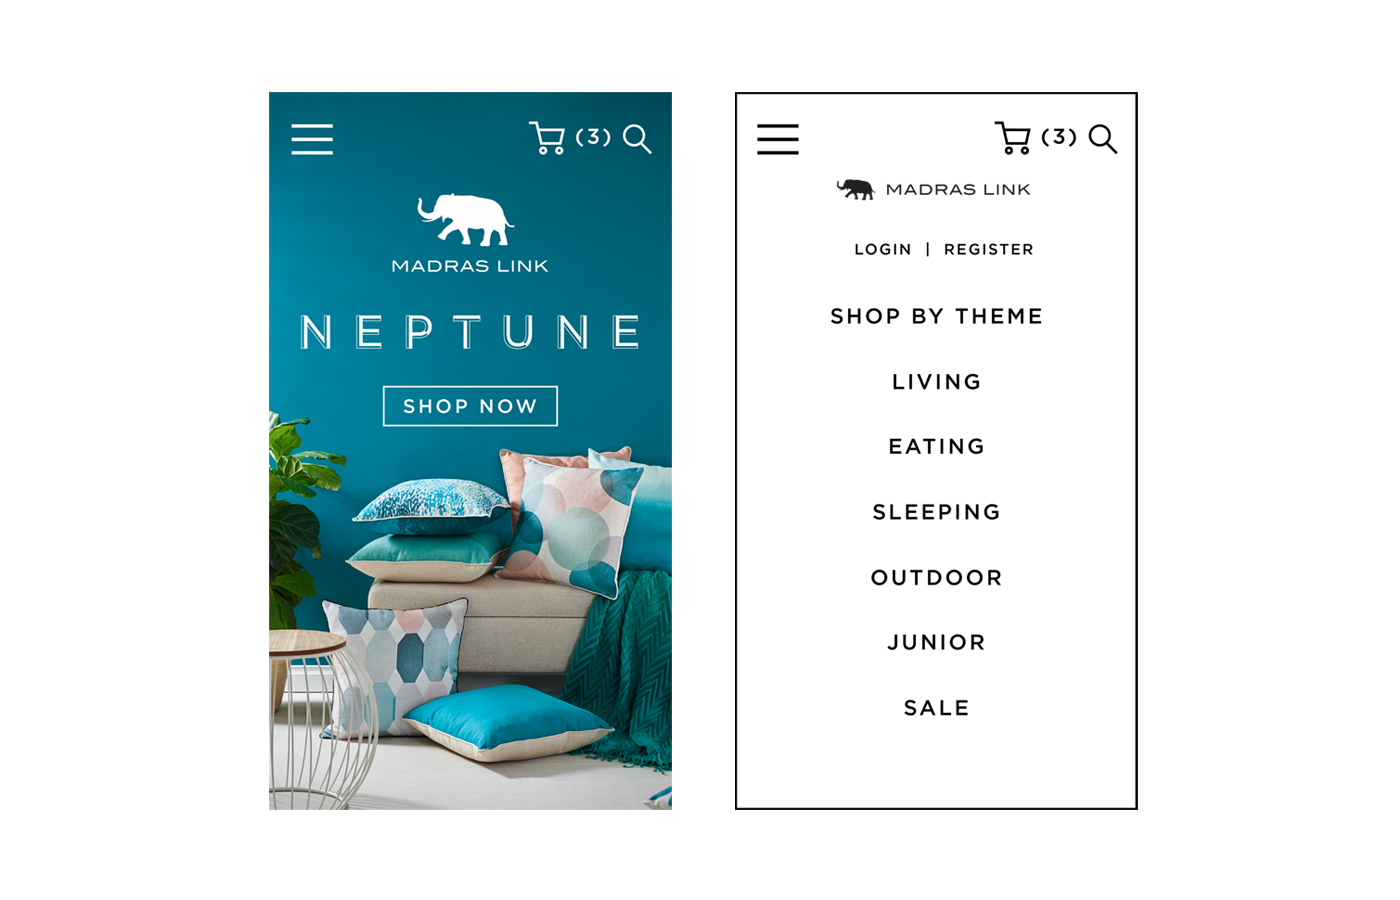 The mobile version includes a slide menu function as well as quick access to the shopping cart and search function.